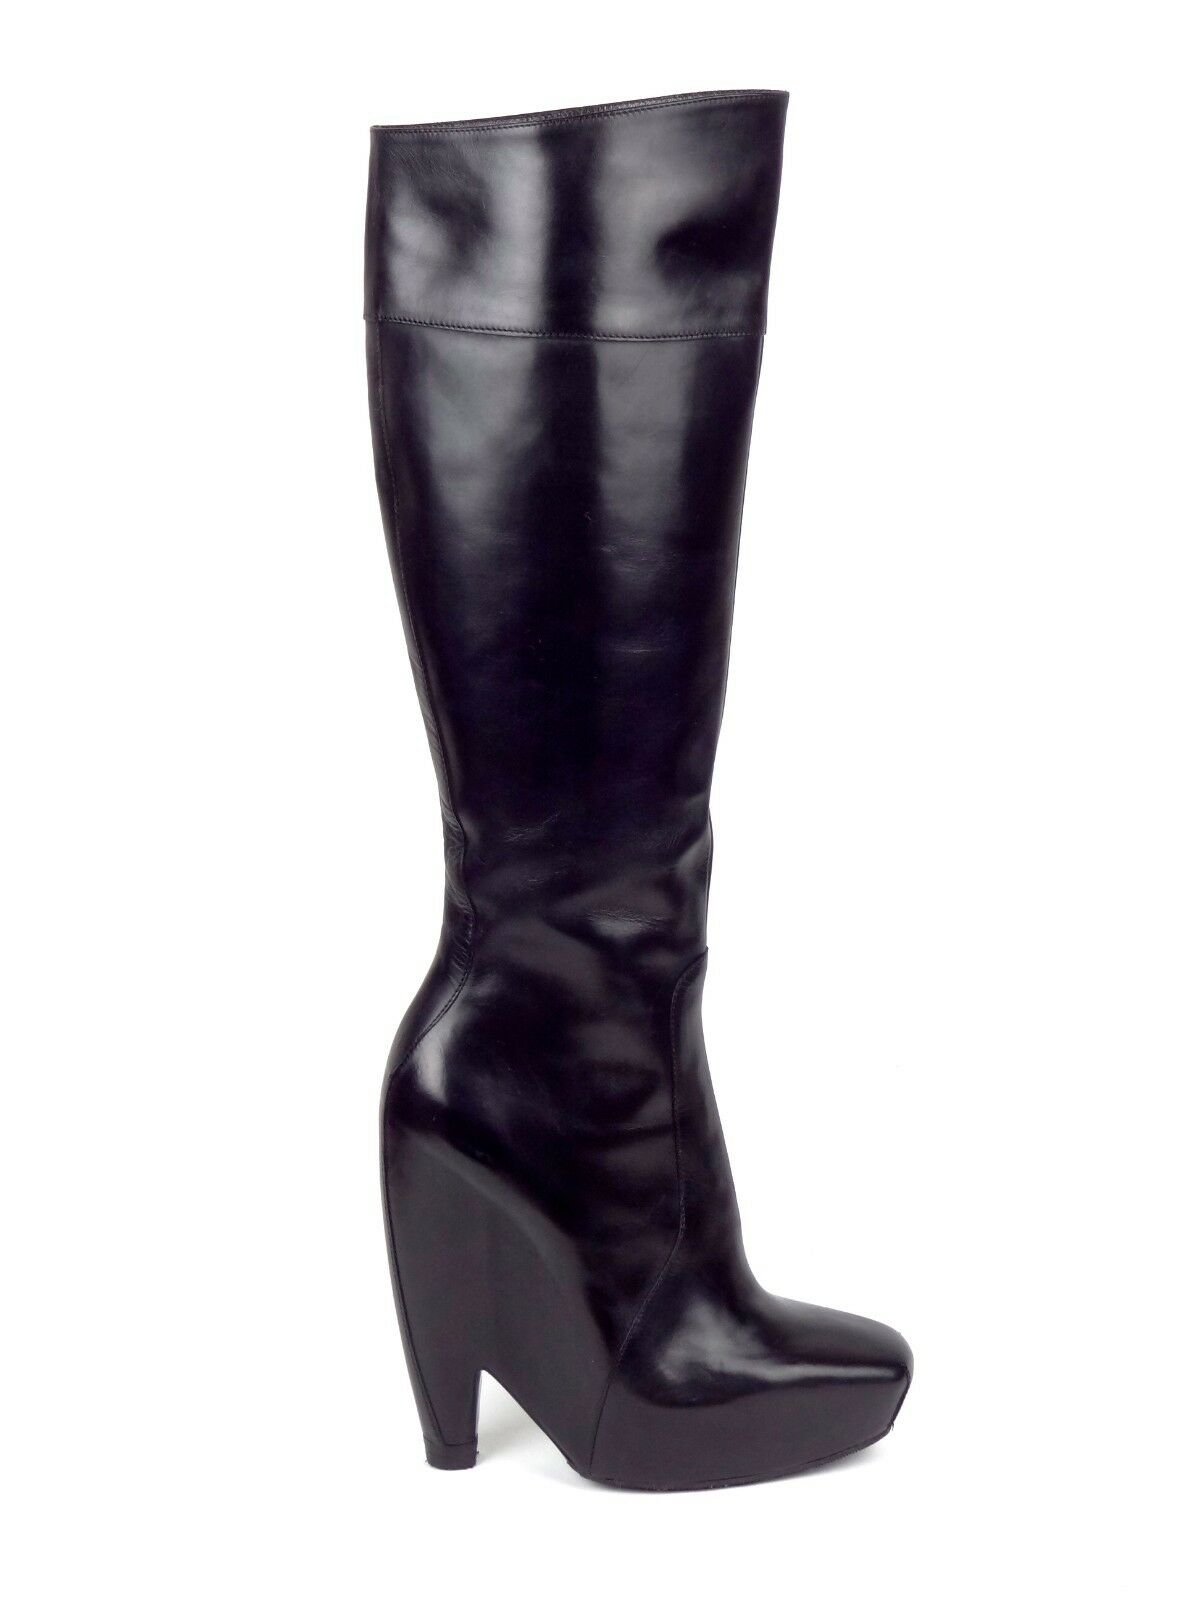 BALENCIAGA Fall 2006 Iconic Black Leather Platform Boots IT38/US7.5 ~NIB~